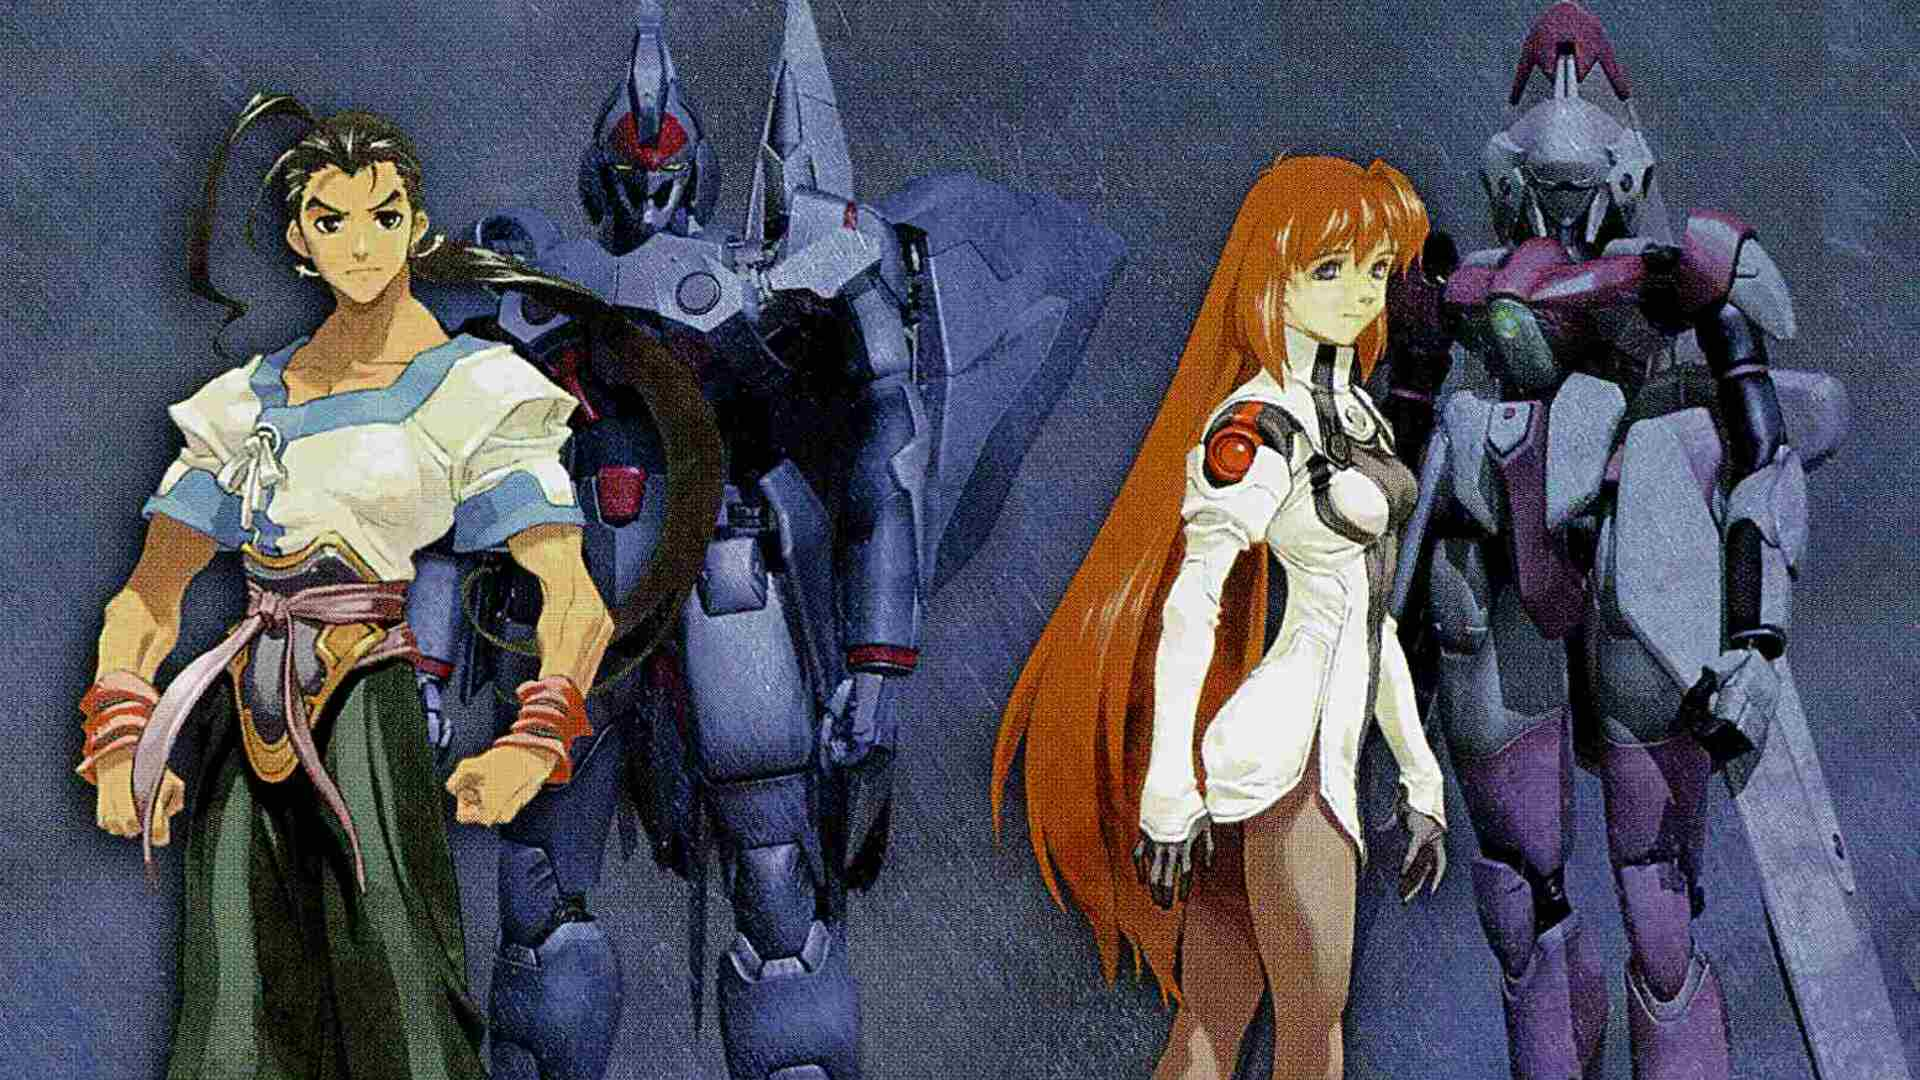 Xenogears 2 Was One More Victim of Final Fantasy: The Spirits Within's Epochal Failure